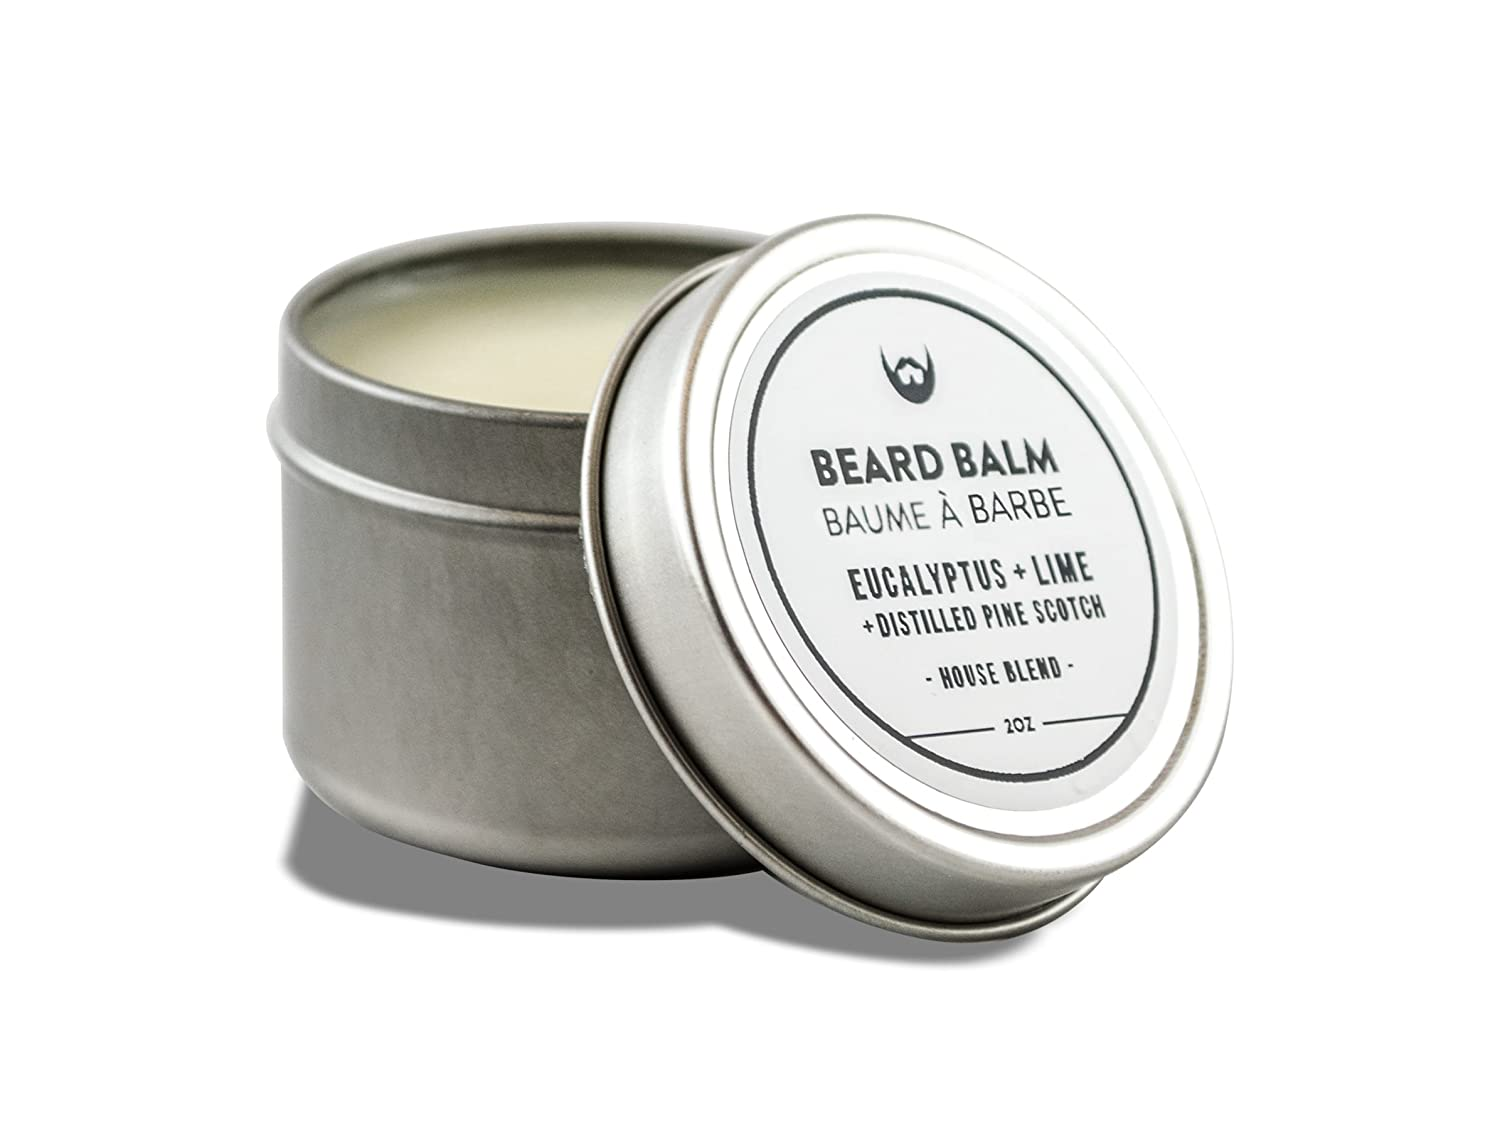 Beard Balm: Eucalyptus + Lime with Distilled Pine Scotch Needle - 2 oz. Canadian made with luxury 100% Natural CertClean Certified Ingredients. Structure Wax for Unruly Beard Hair. Always Bearded Lifestyle